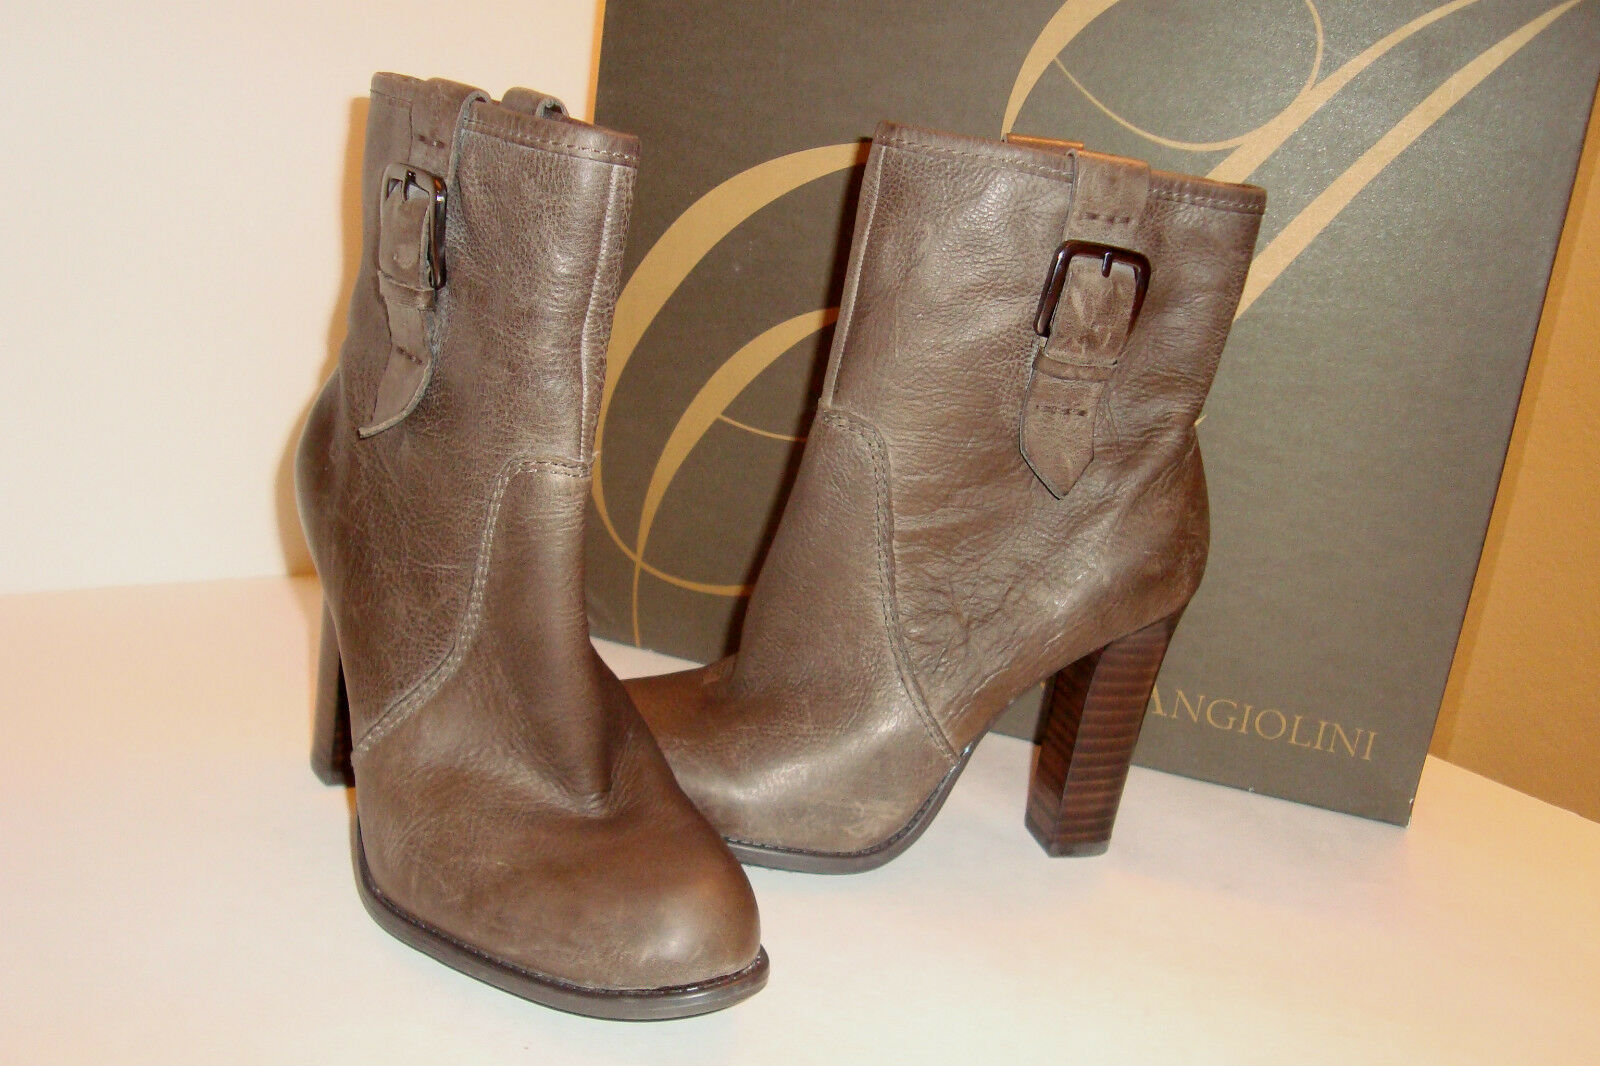 Enzo Angiolini Womens NWB Kaspi Brown Leather Ankle Boots Shoes 5.5 MED NEW